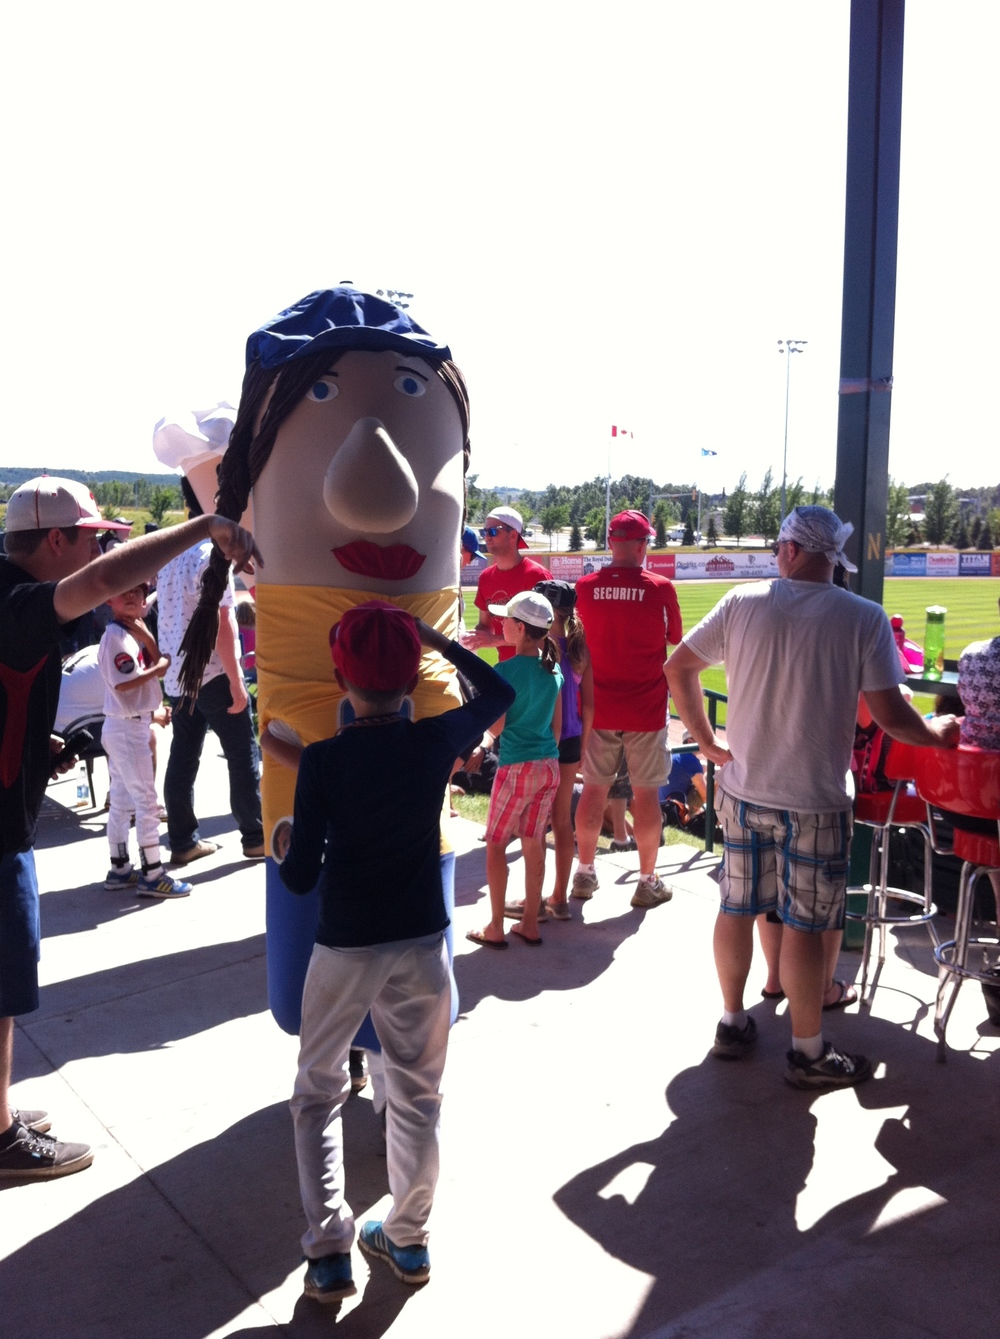 Just like the big leagues there are mascots to hug.